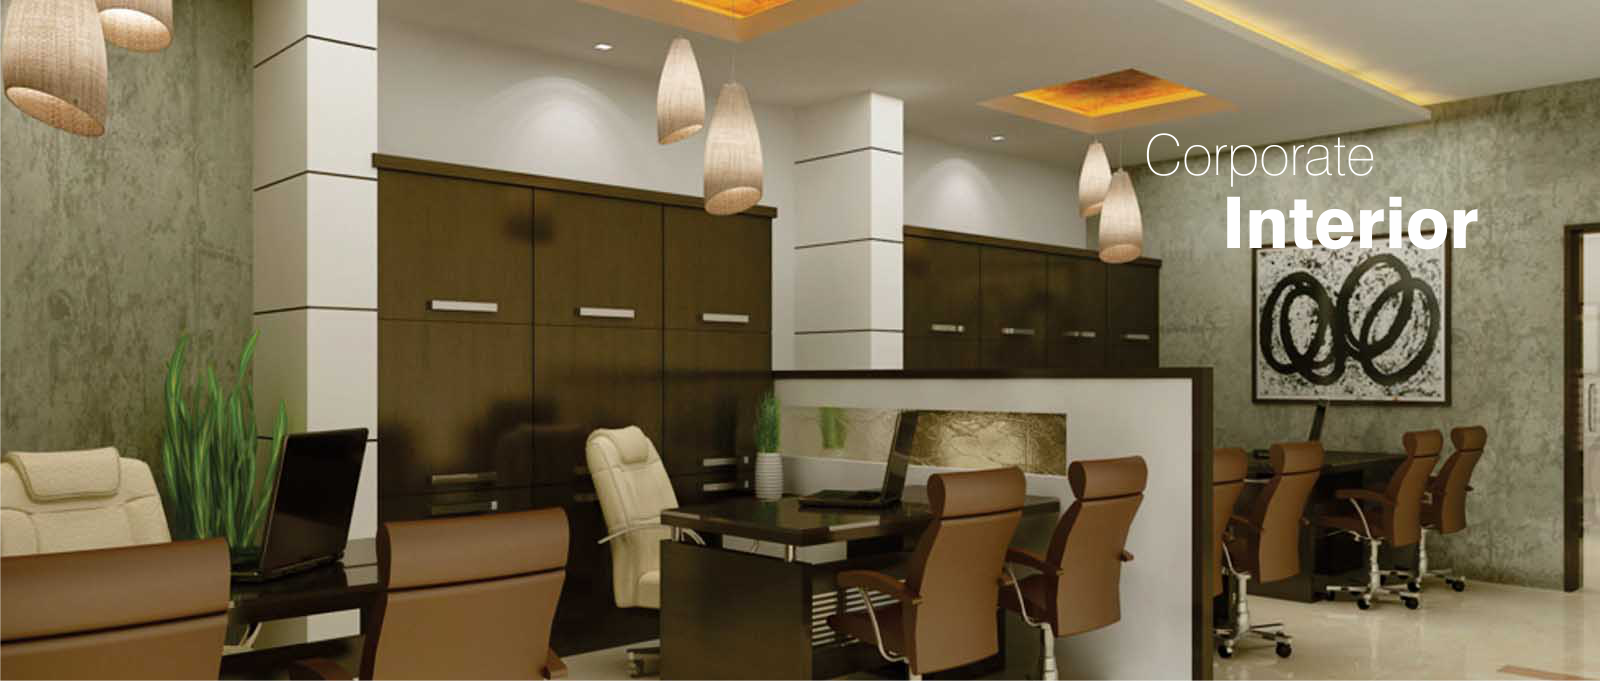 Webiste Designs Corporate Interior Design